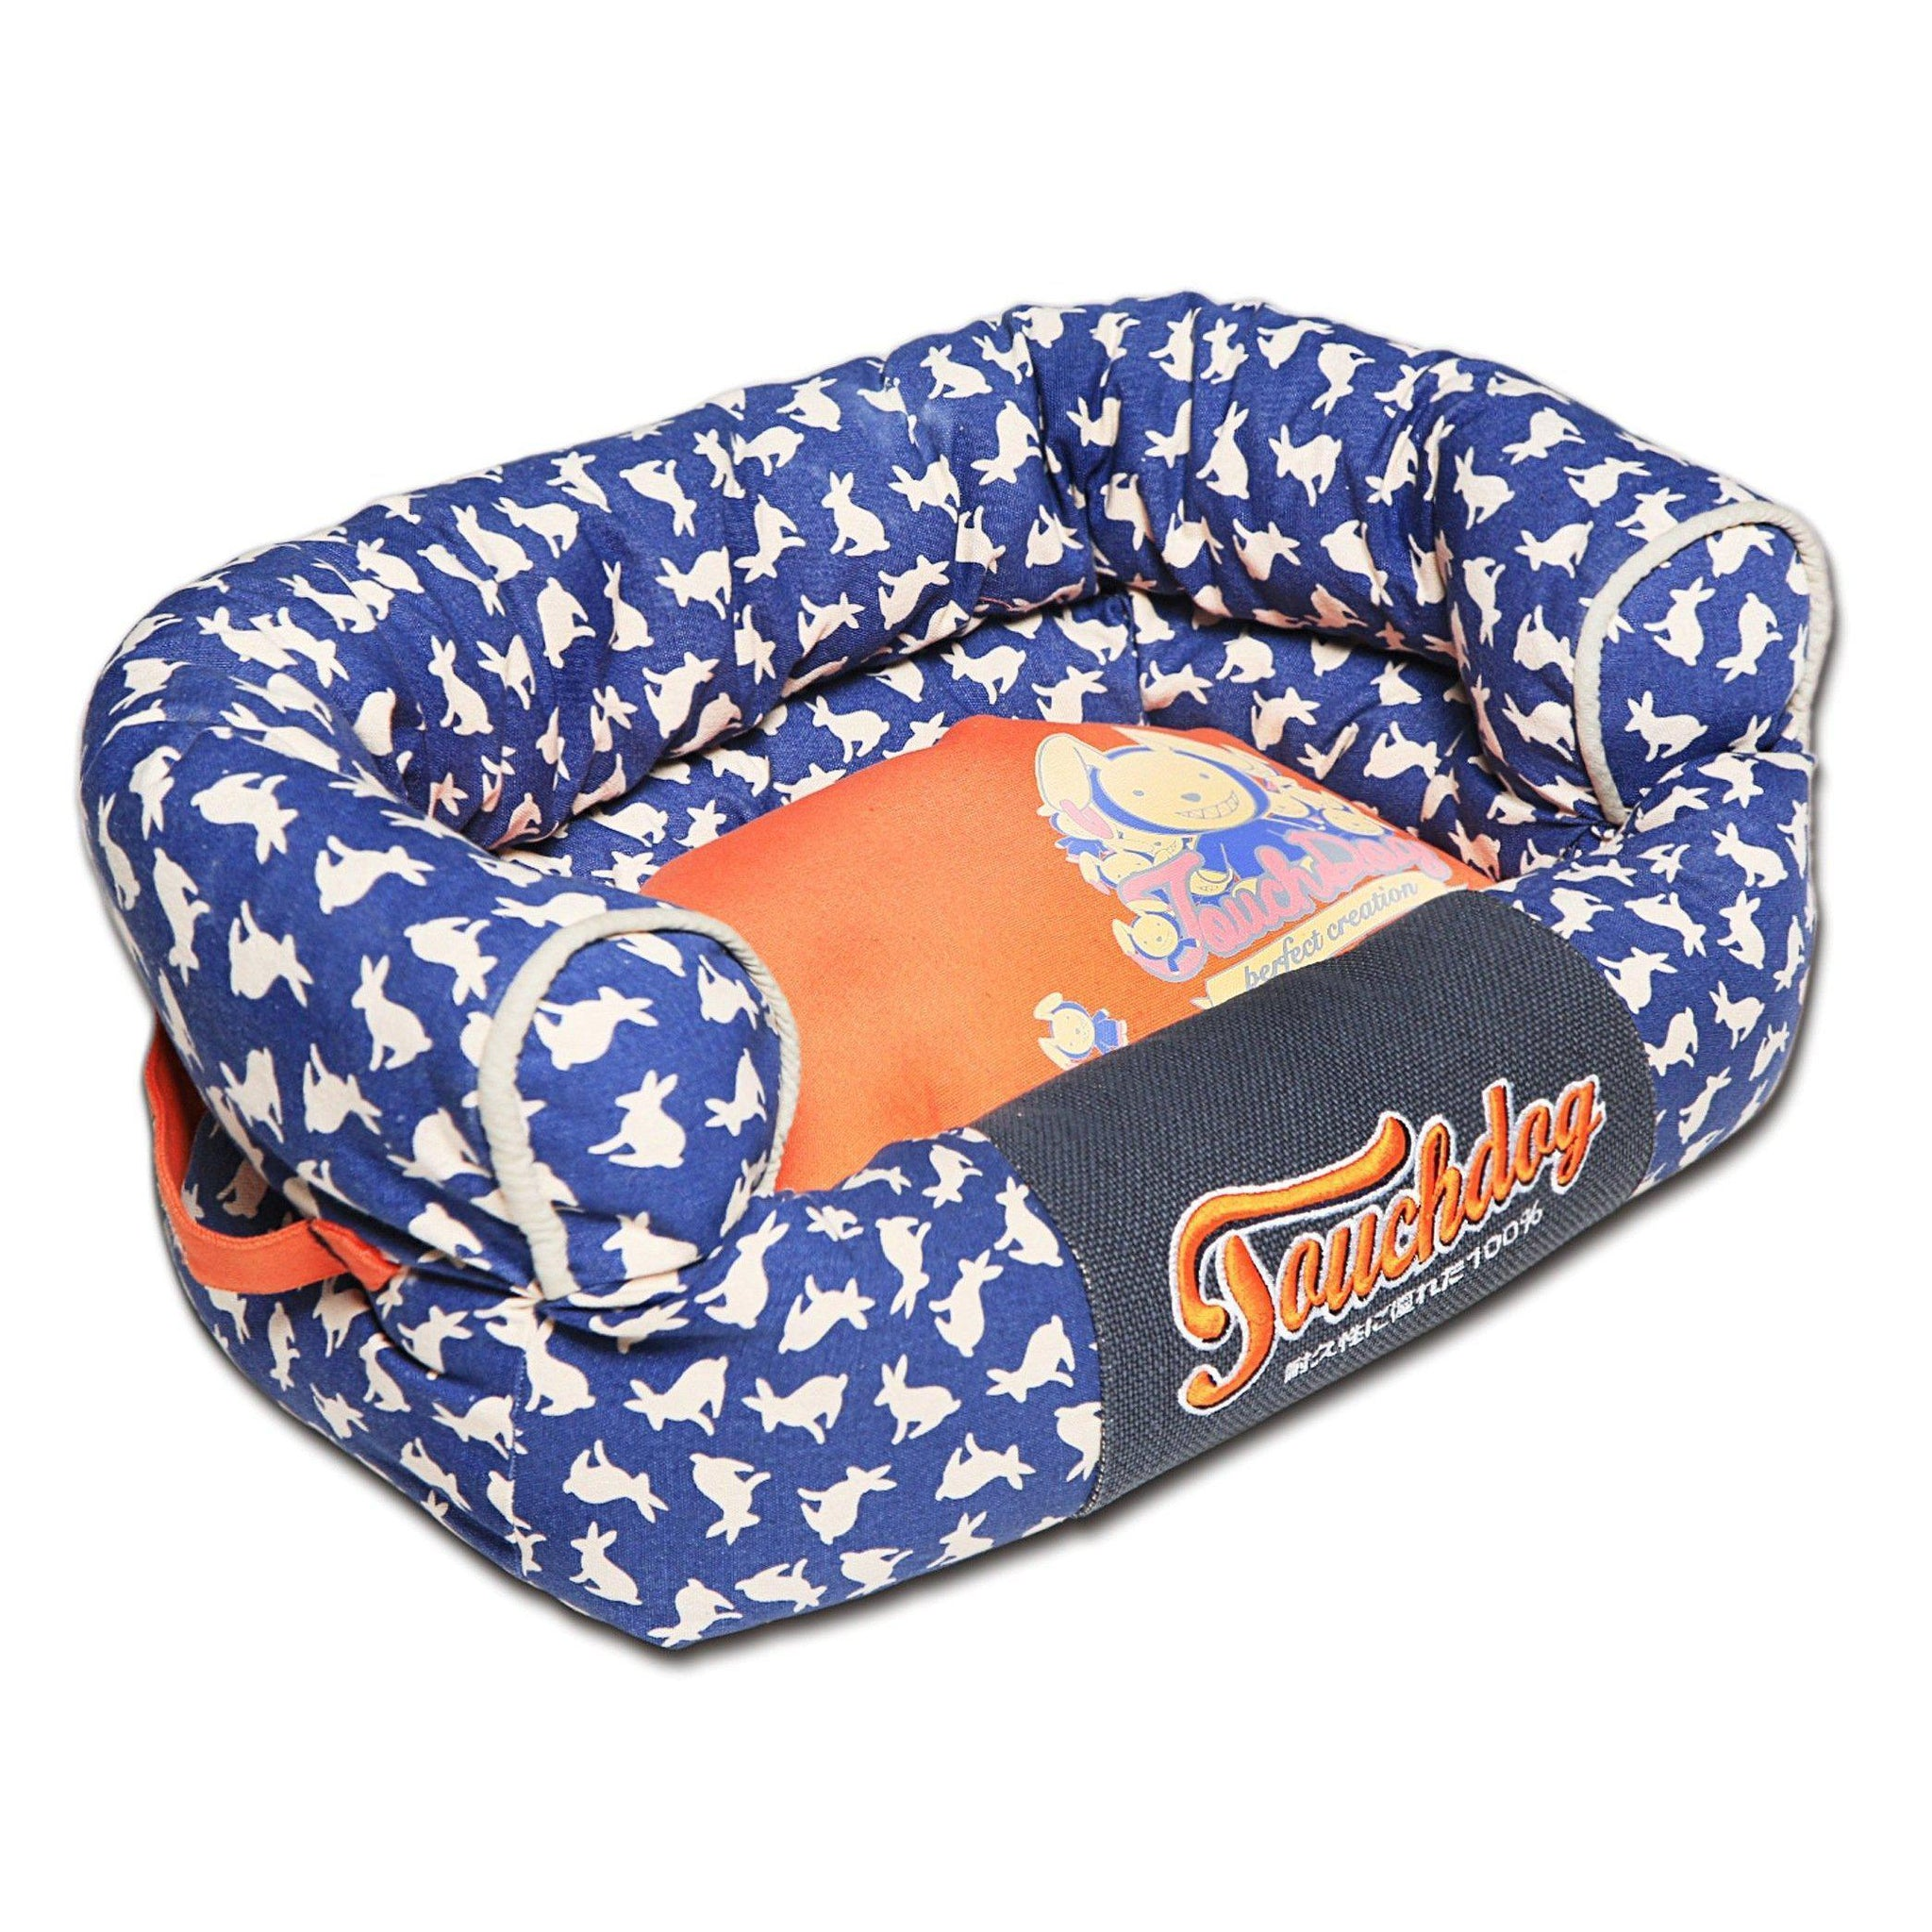 Touchdog Lazy-Bones Rabbit-Spotted Premium Easy Wash Couch Dog Bed-Touchdog-DirtyFurClothing